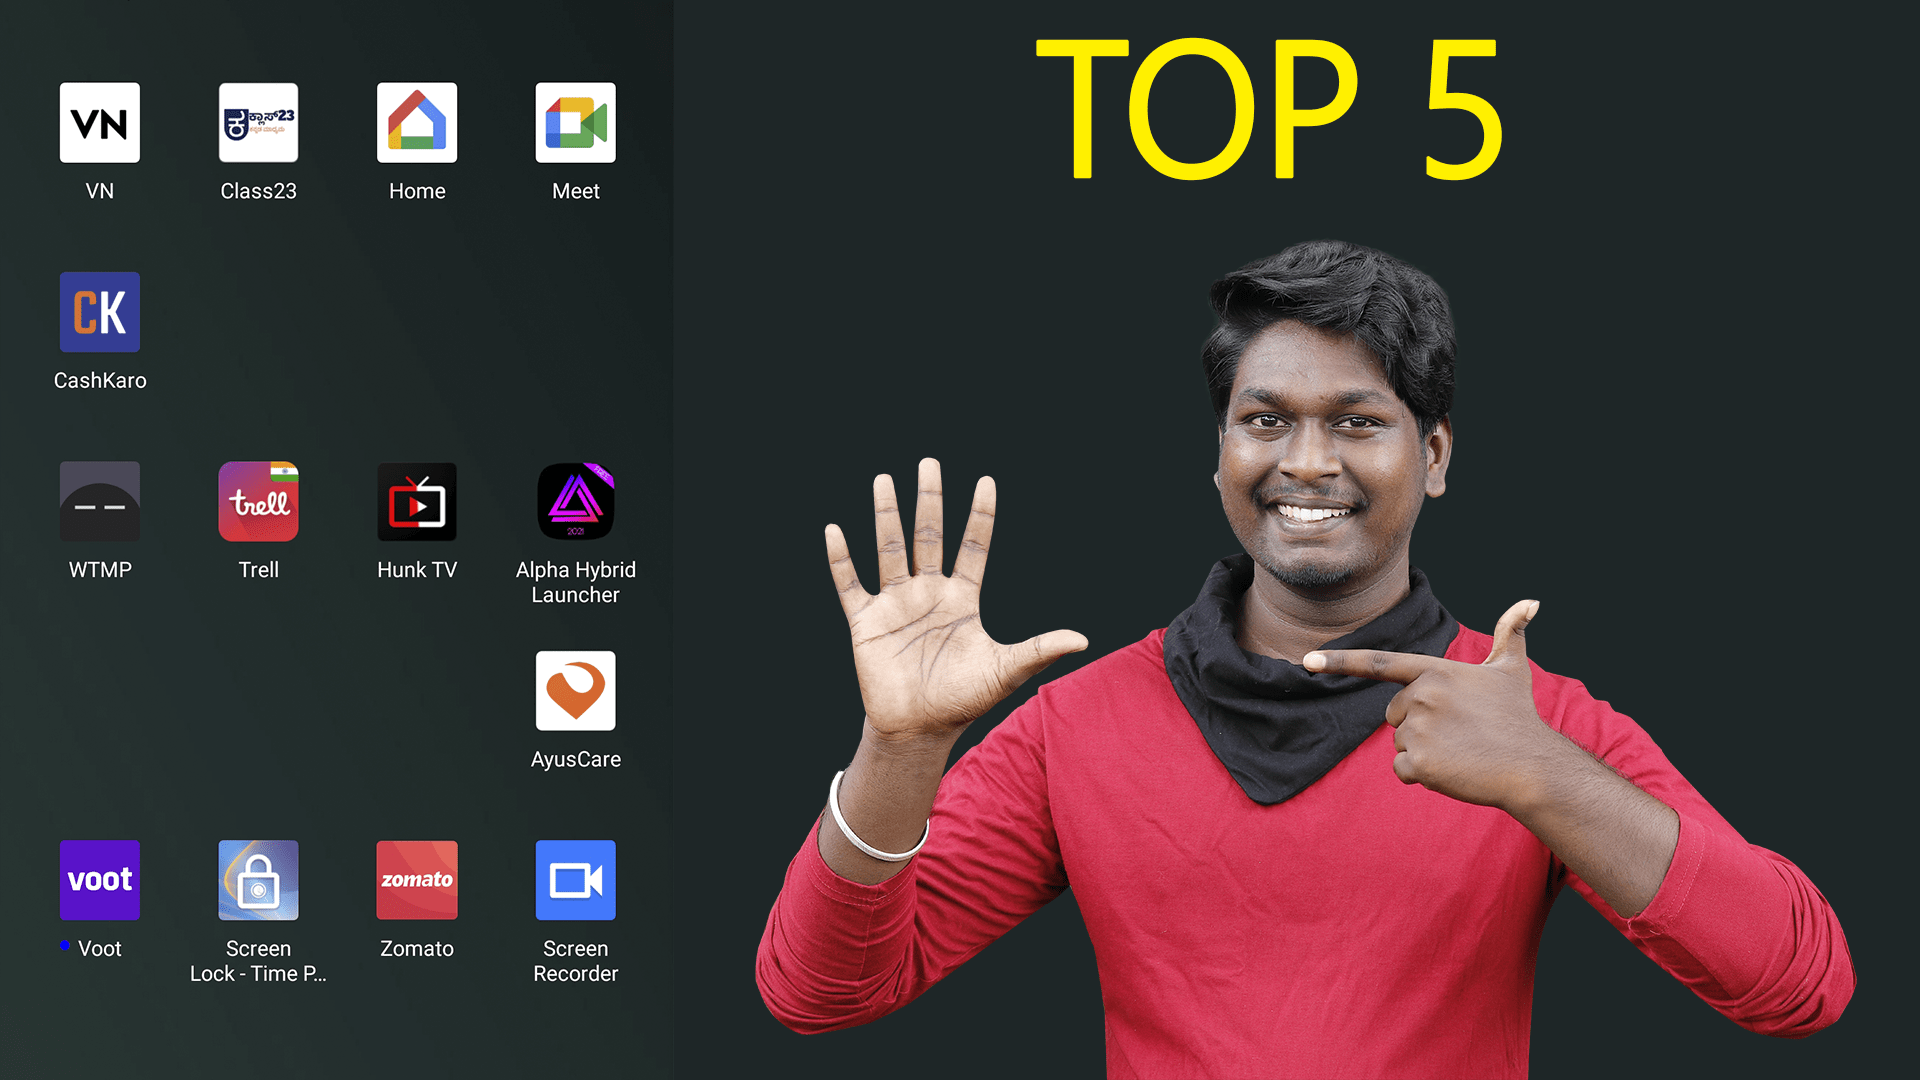 Top 5 Android Apps 2021, Top 5 Android Apps,